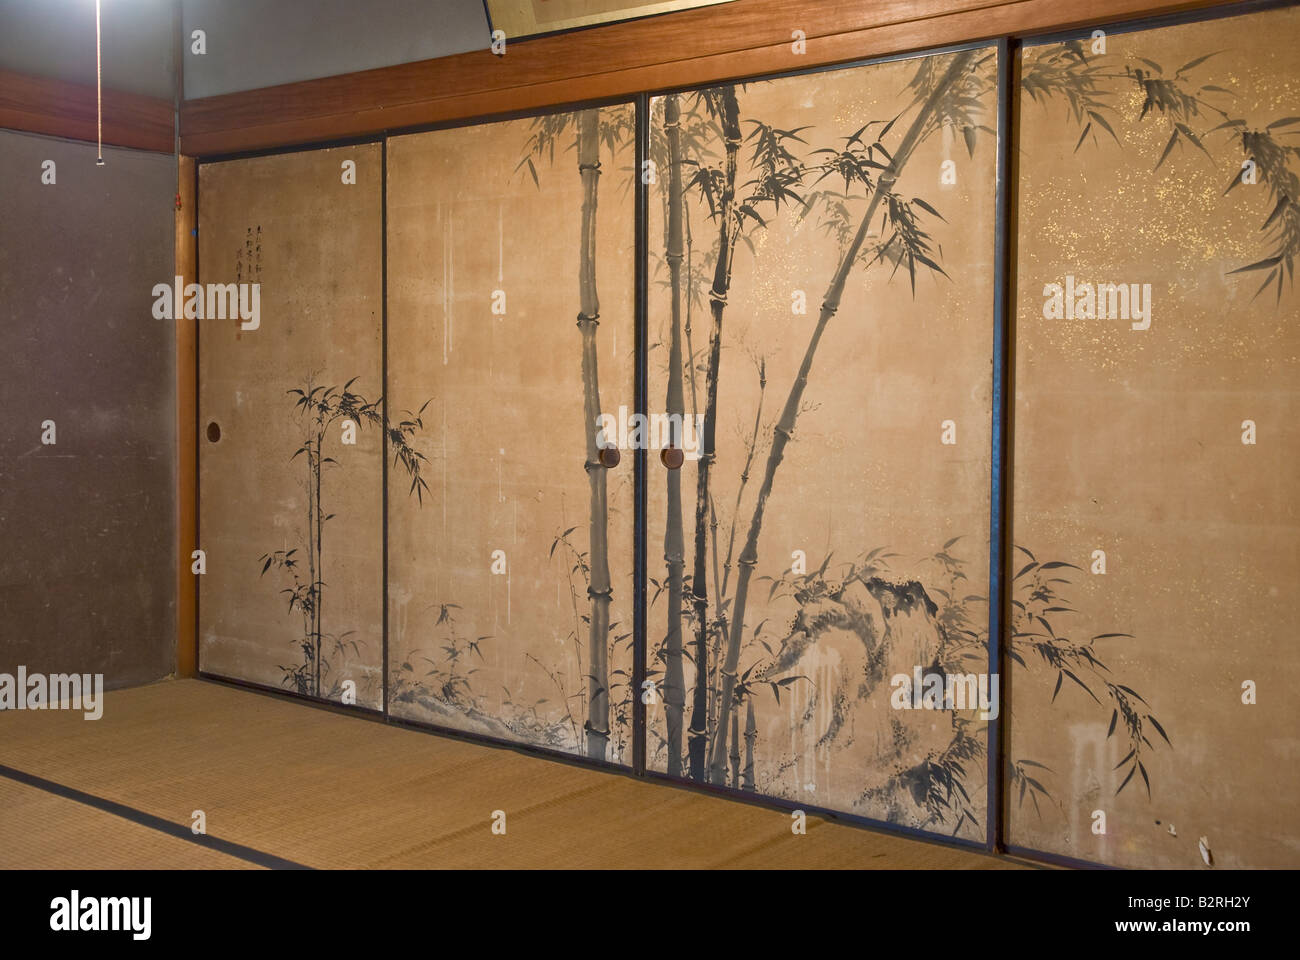 Painted closet doors Shabby Chic Sliding Closet Doors Painted With Reproducing Bamboo Garden Alamy Sliding Closet Doors Painted With Reproducing Bamboo Garden Stock